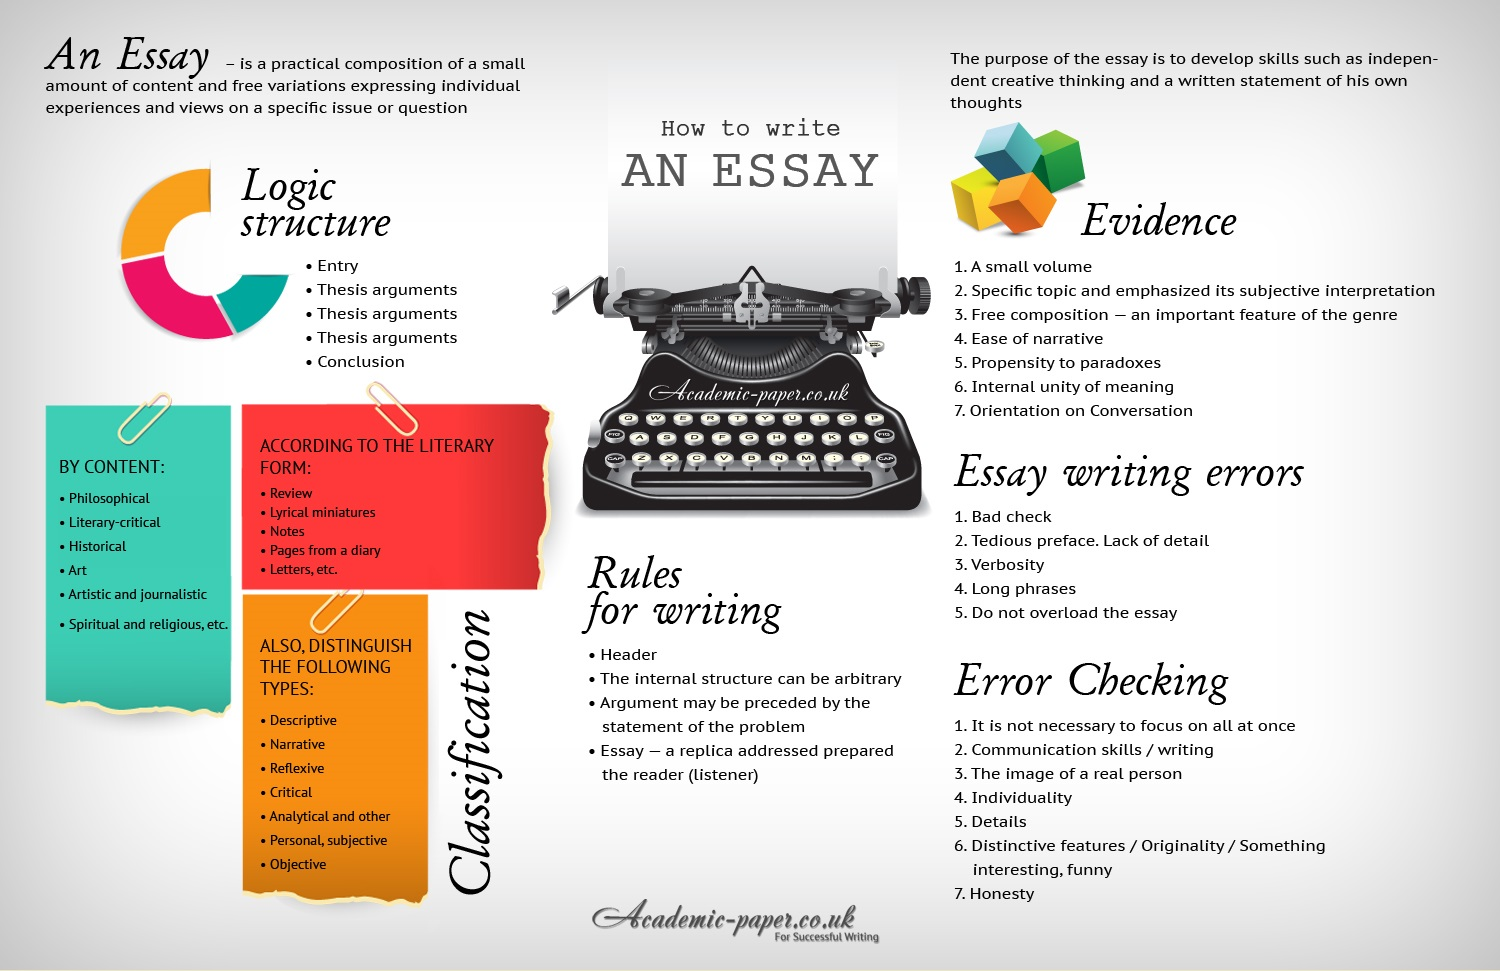 essay-writing-companies-review-help-students-in-their-academic-writing ...